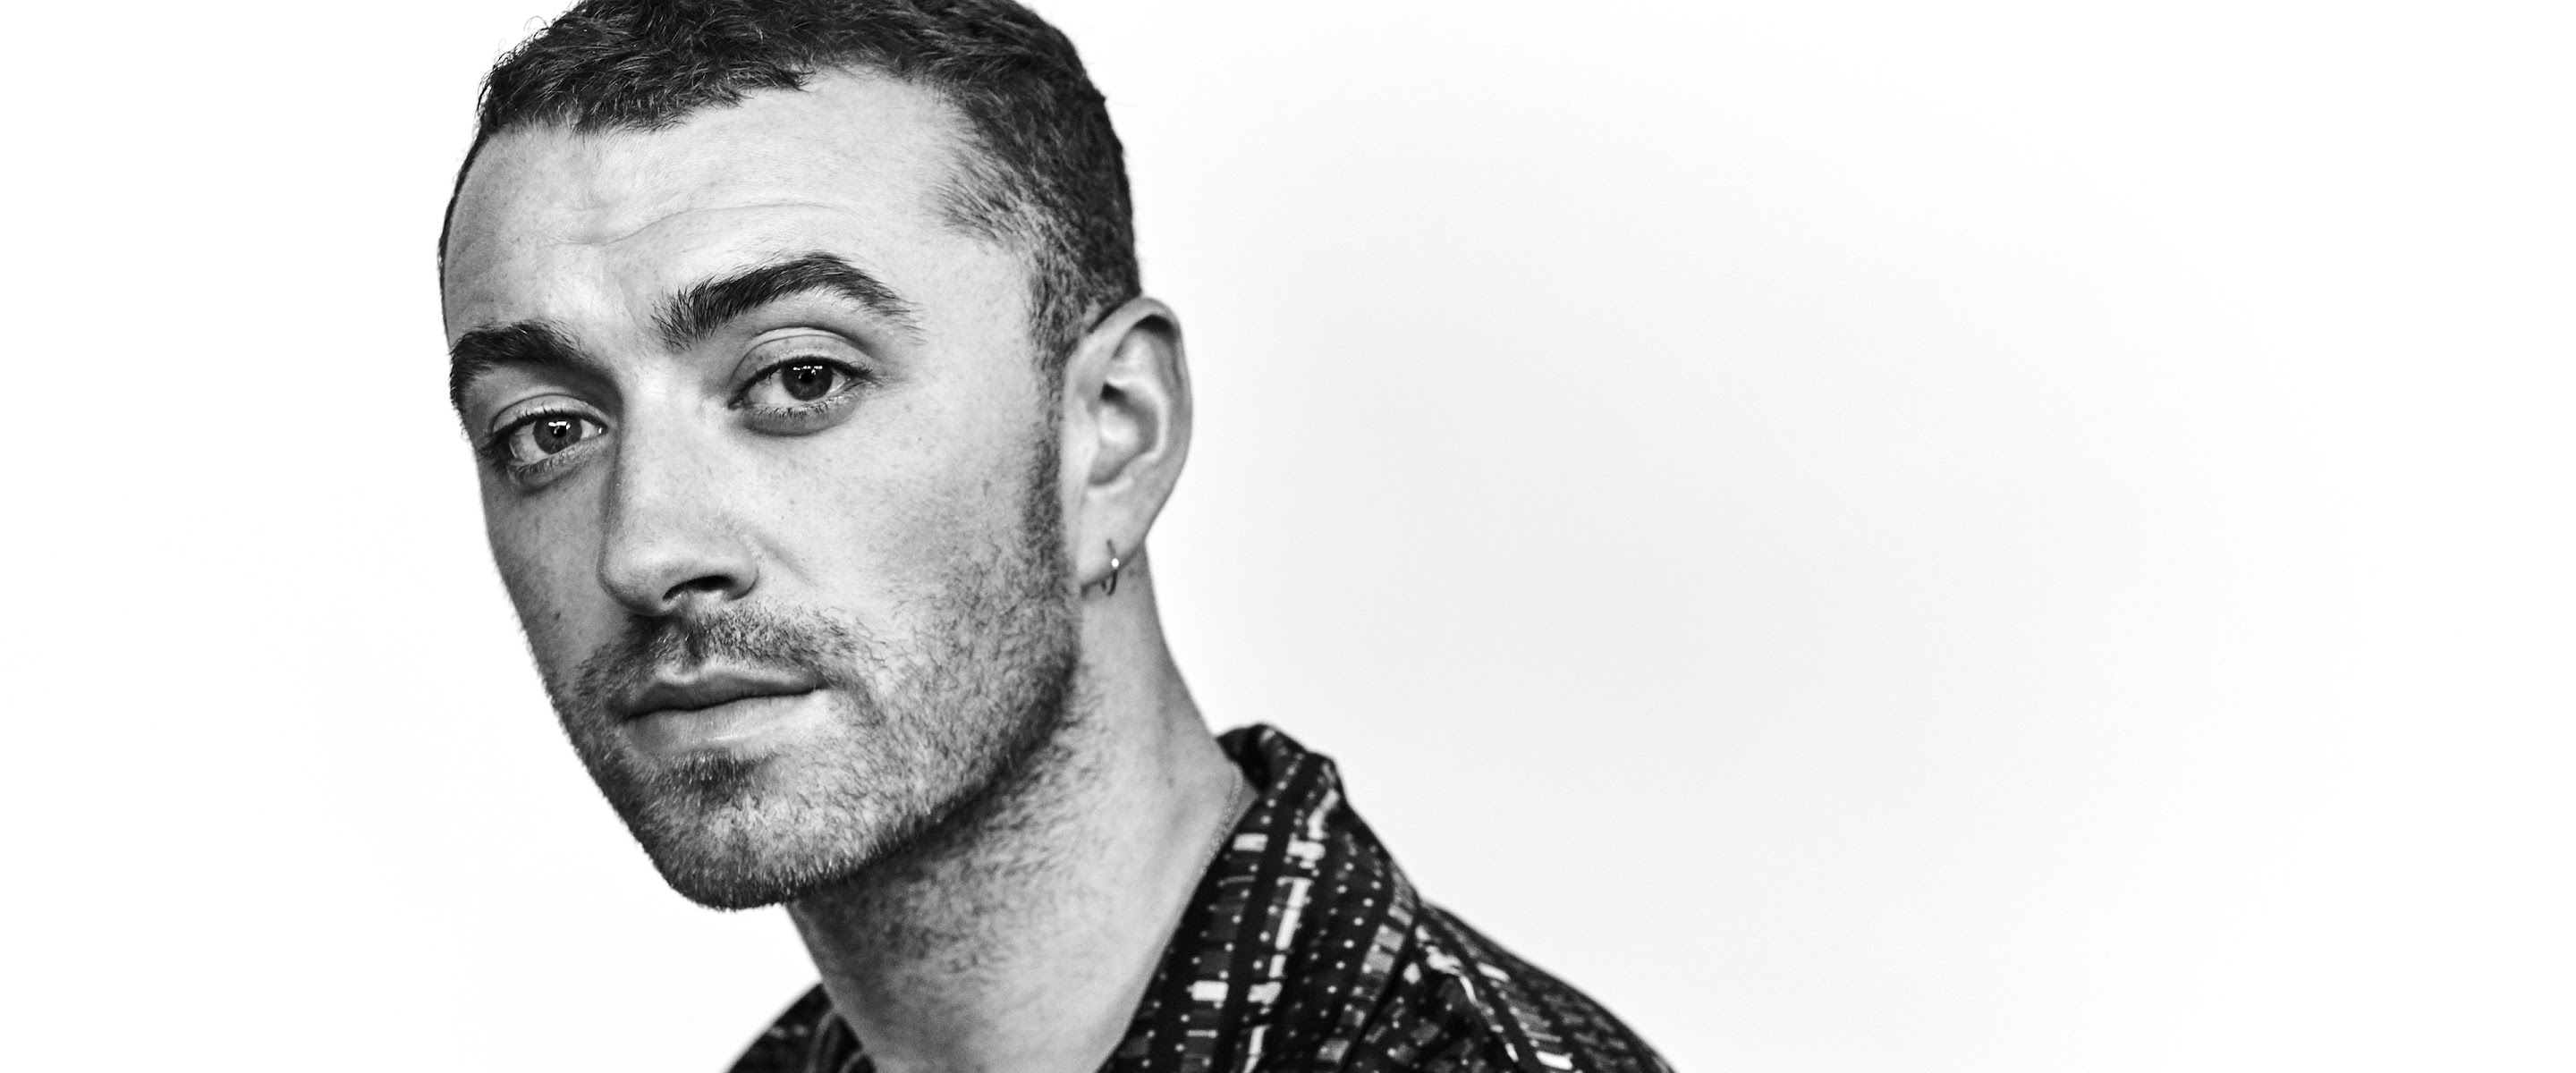 Sam Smith surprend avec son nouveau single The Lighthouse Keeper